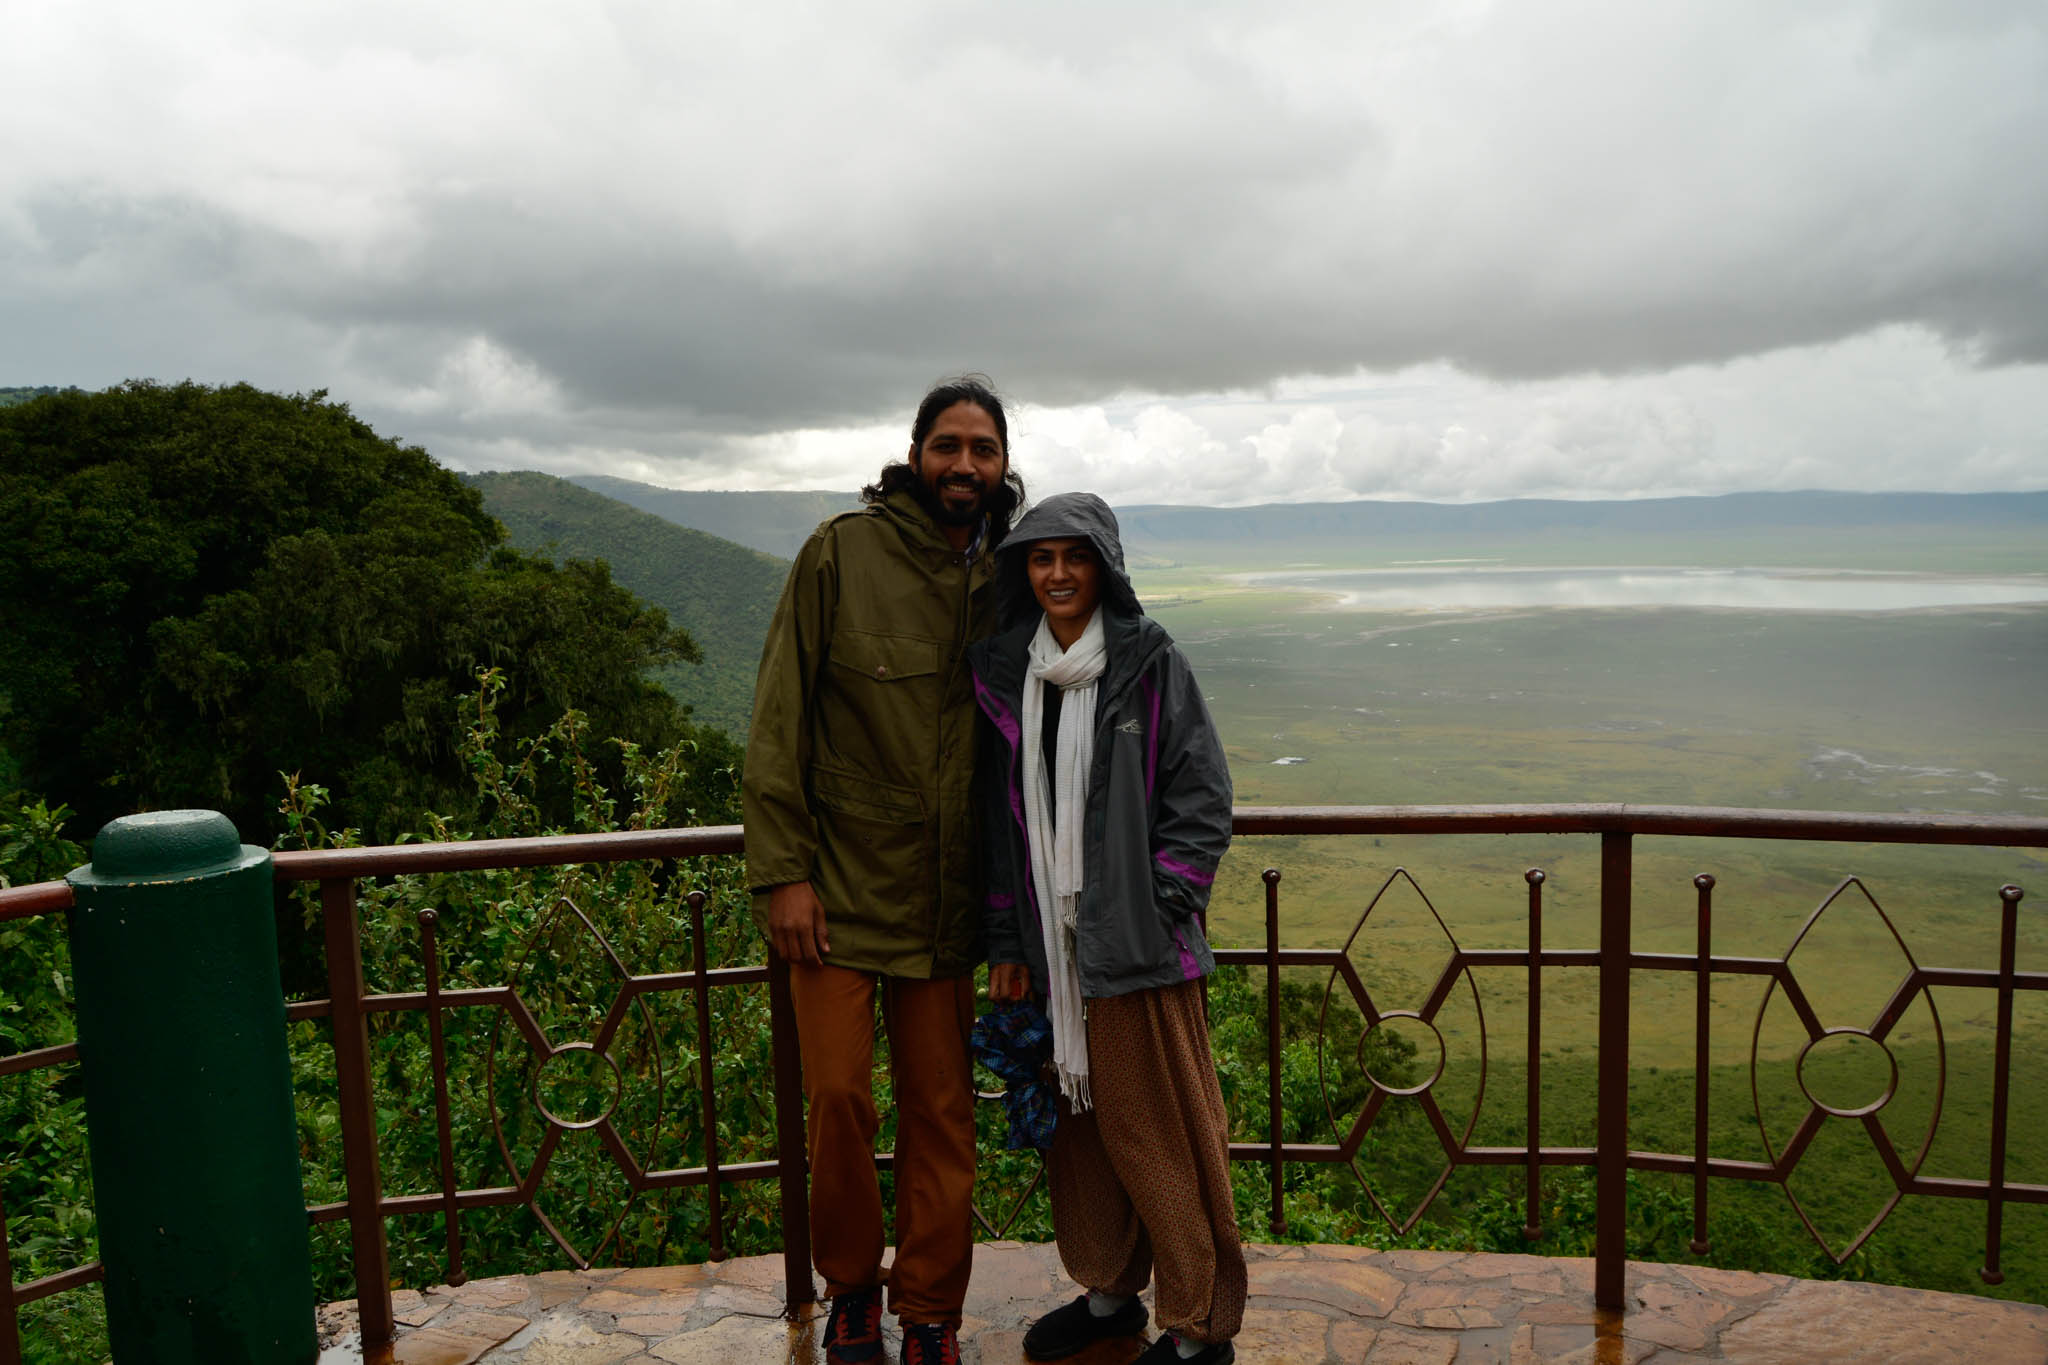 Us at the Ngorongoro  Crater